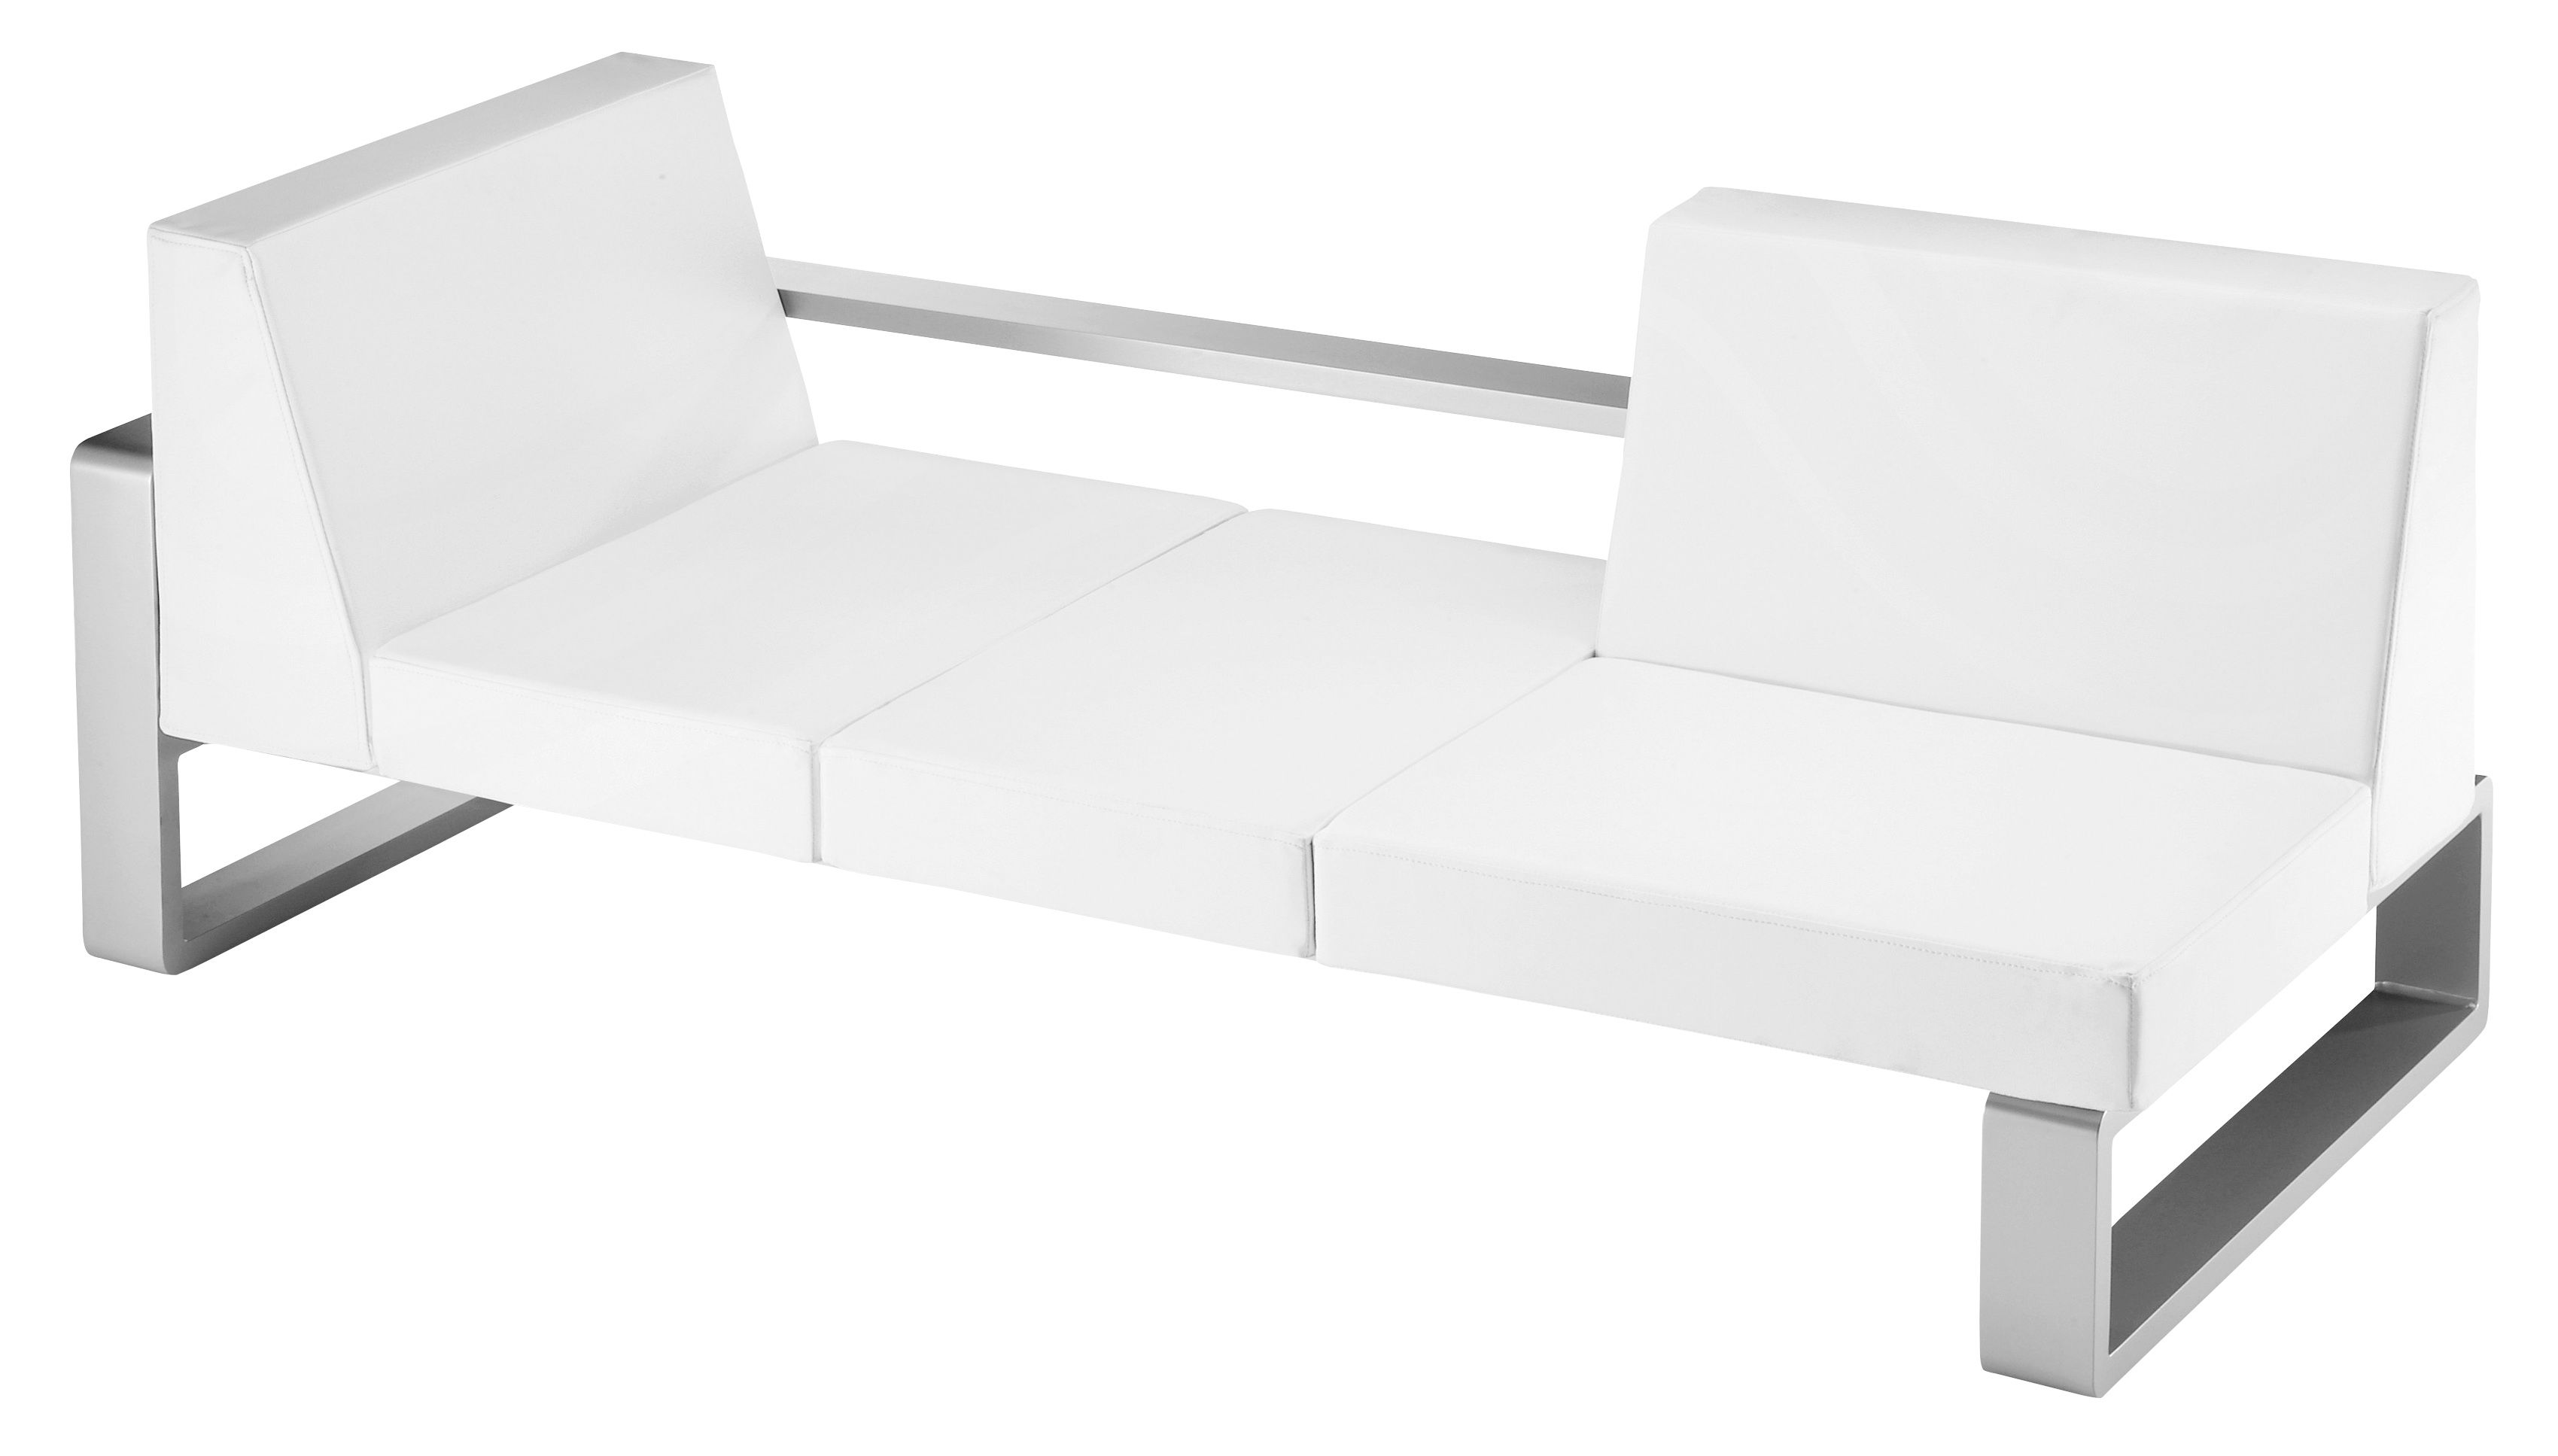 Furniture - Sofas - Kama 3 & more seater sofa by EGO Paris - White vinyl / silver structure - Lacquered aluminium, Vinal